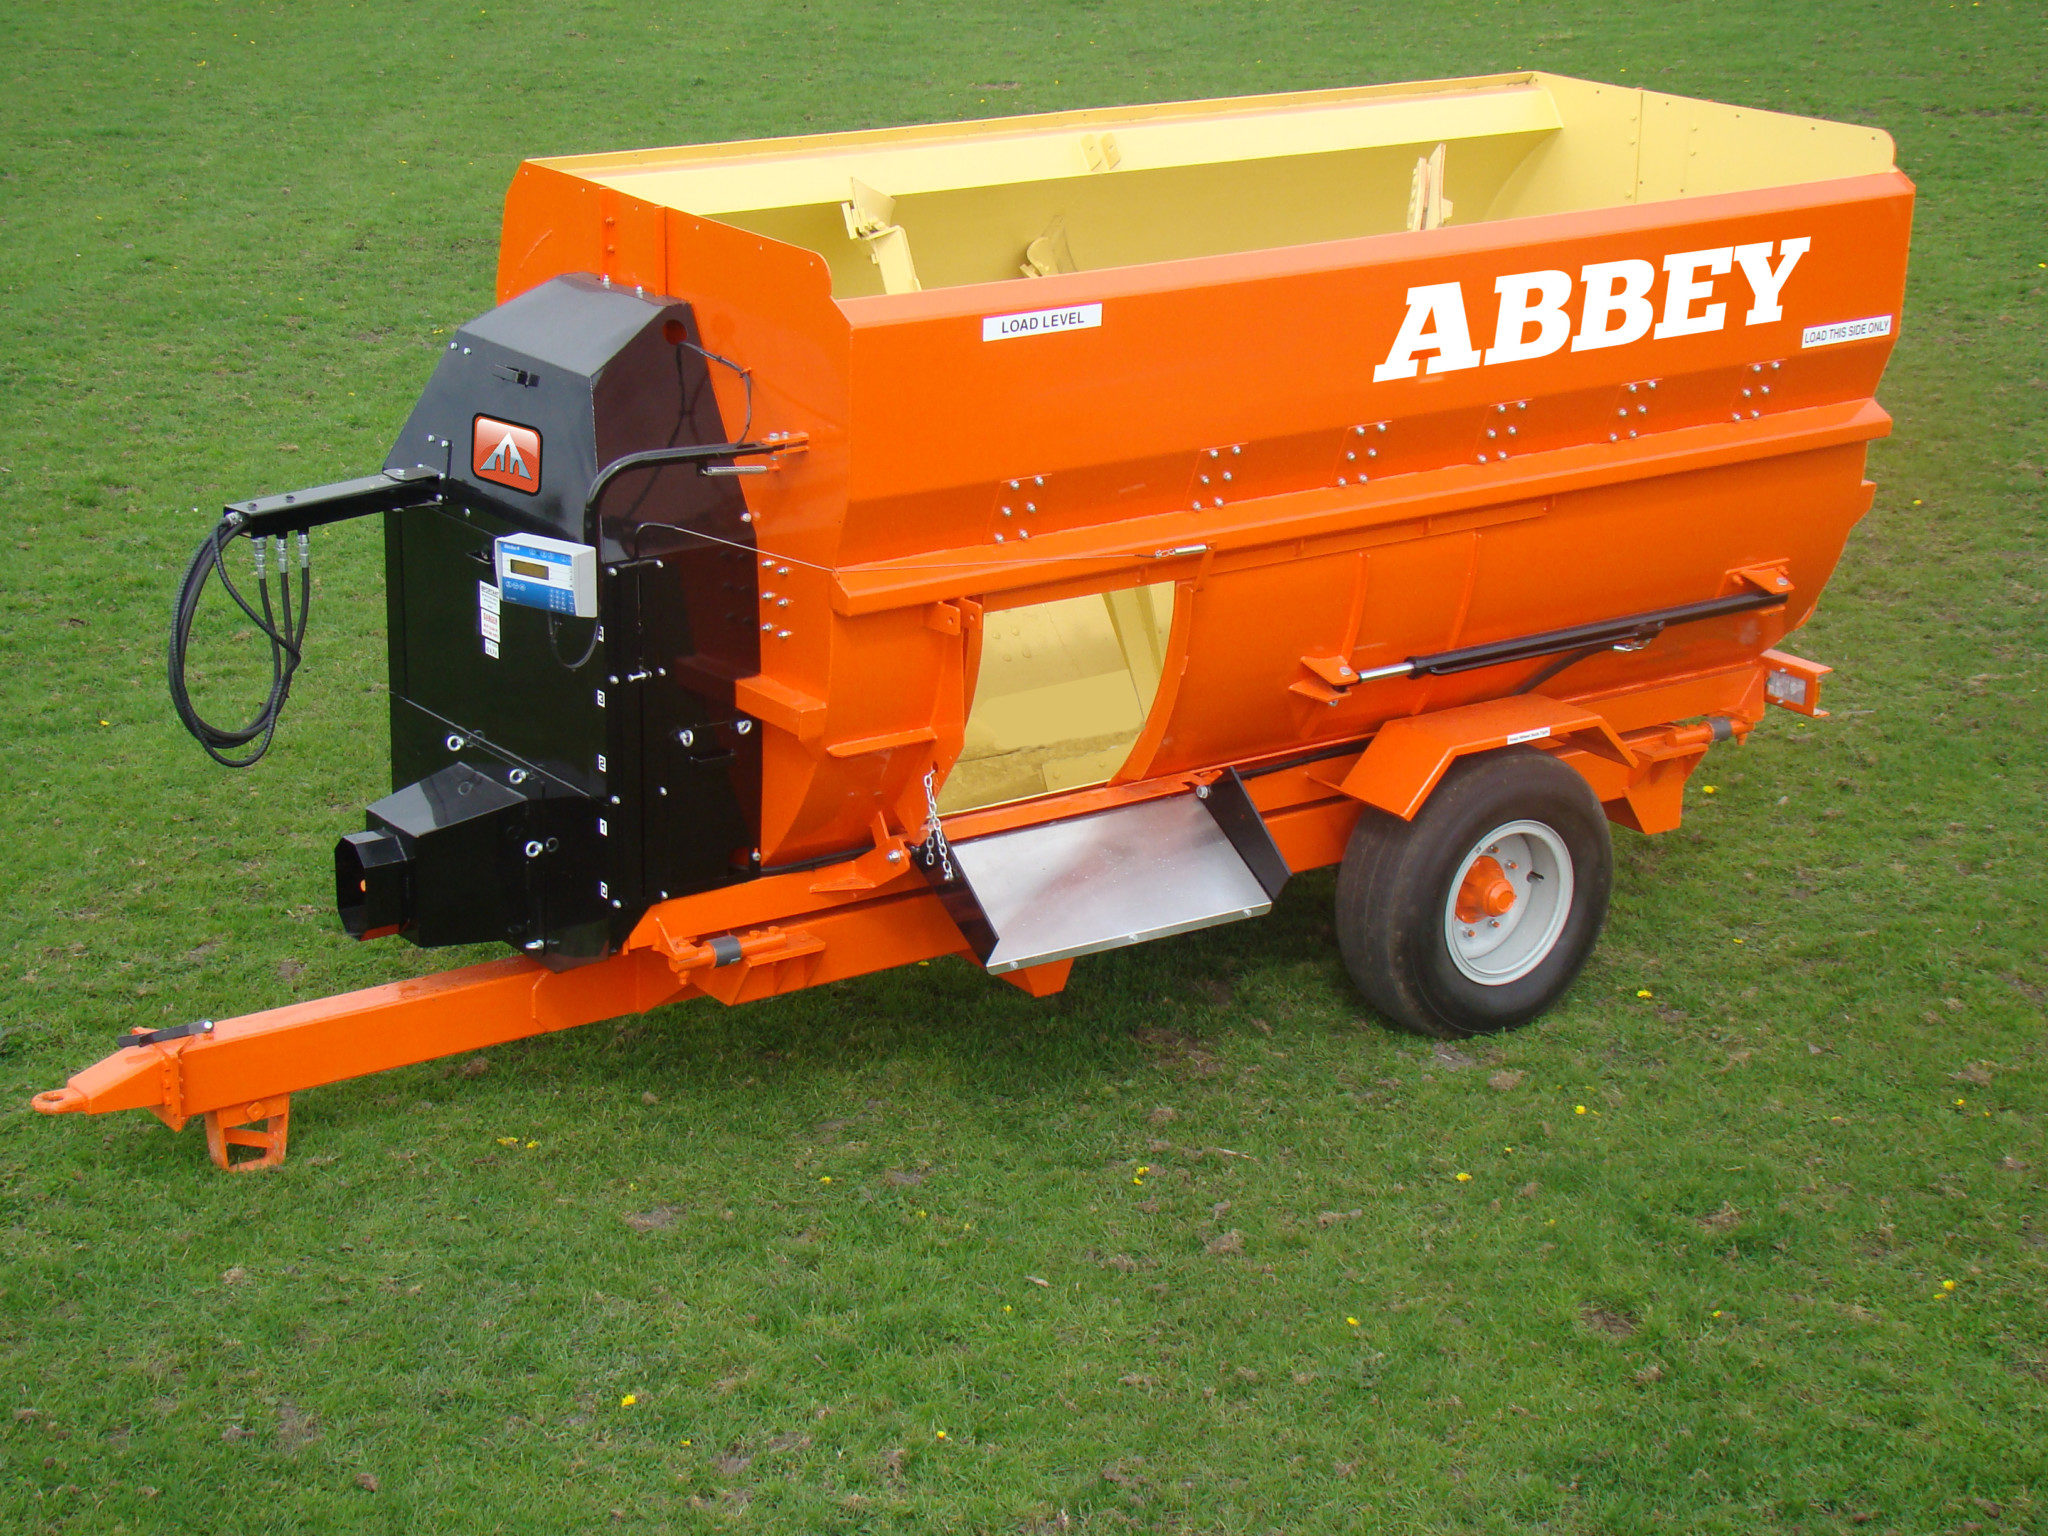 Abbey Paddle Feeder Machinery Range